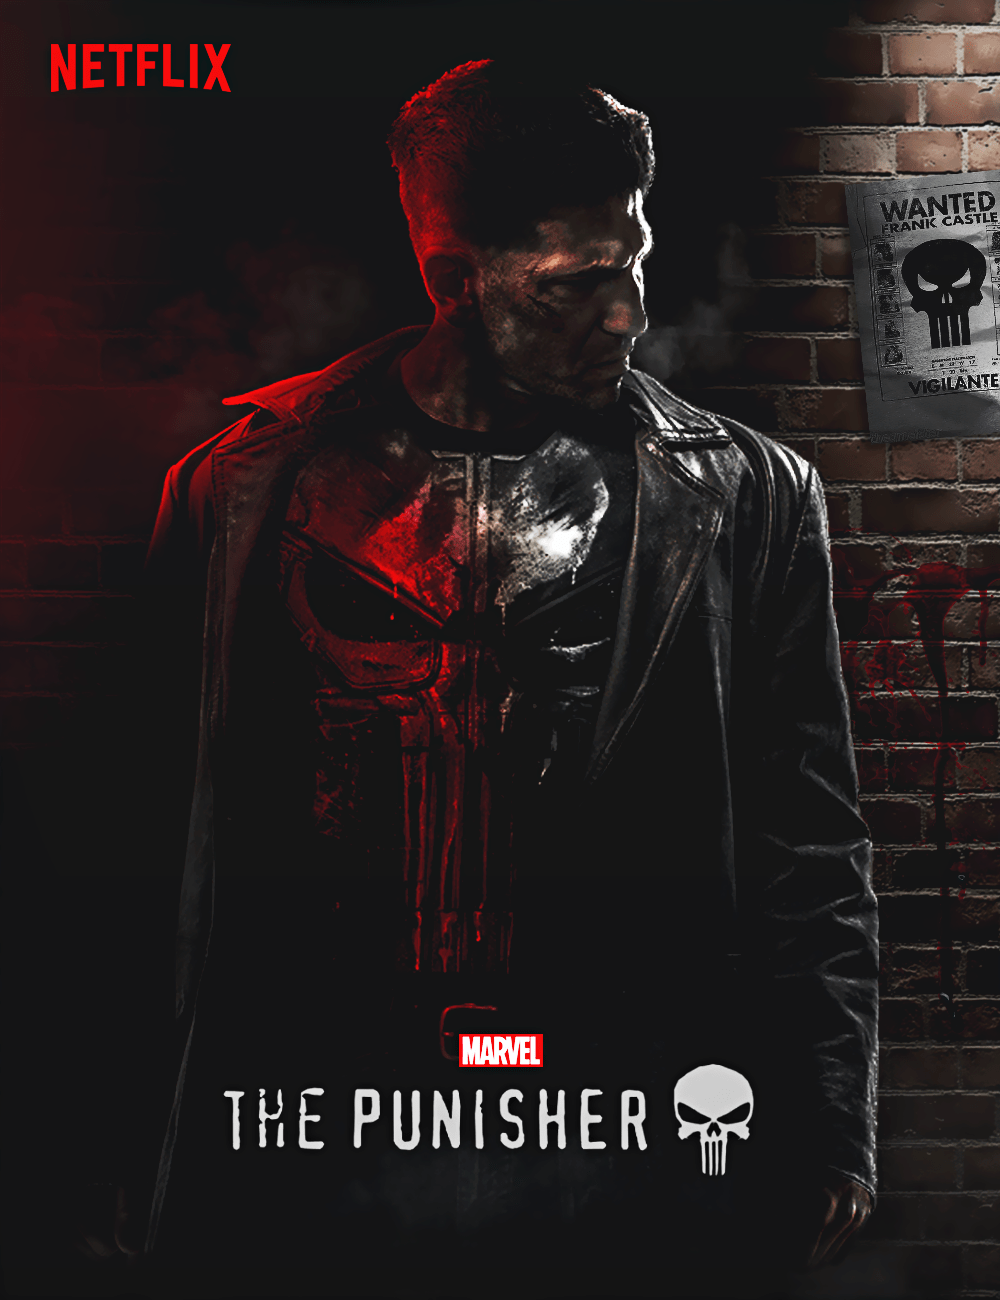 The Punisher / Frank Castle (In the likeness of Jon